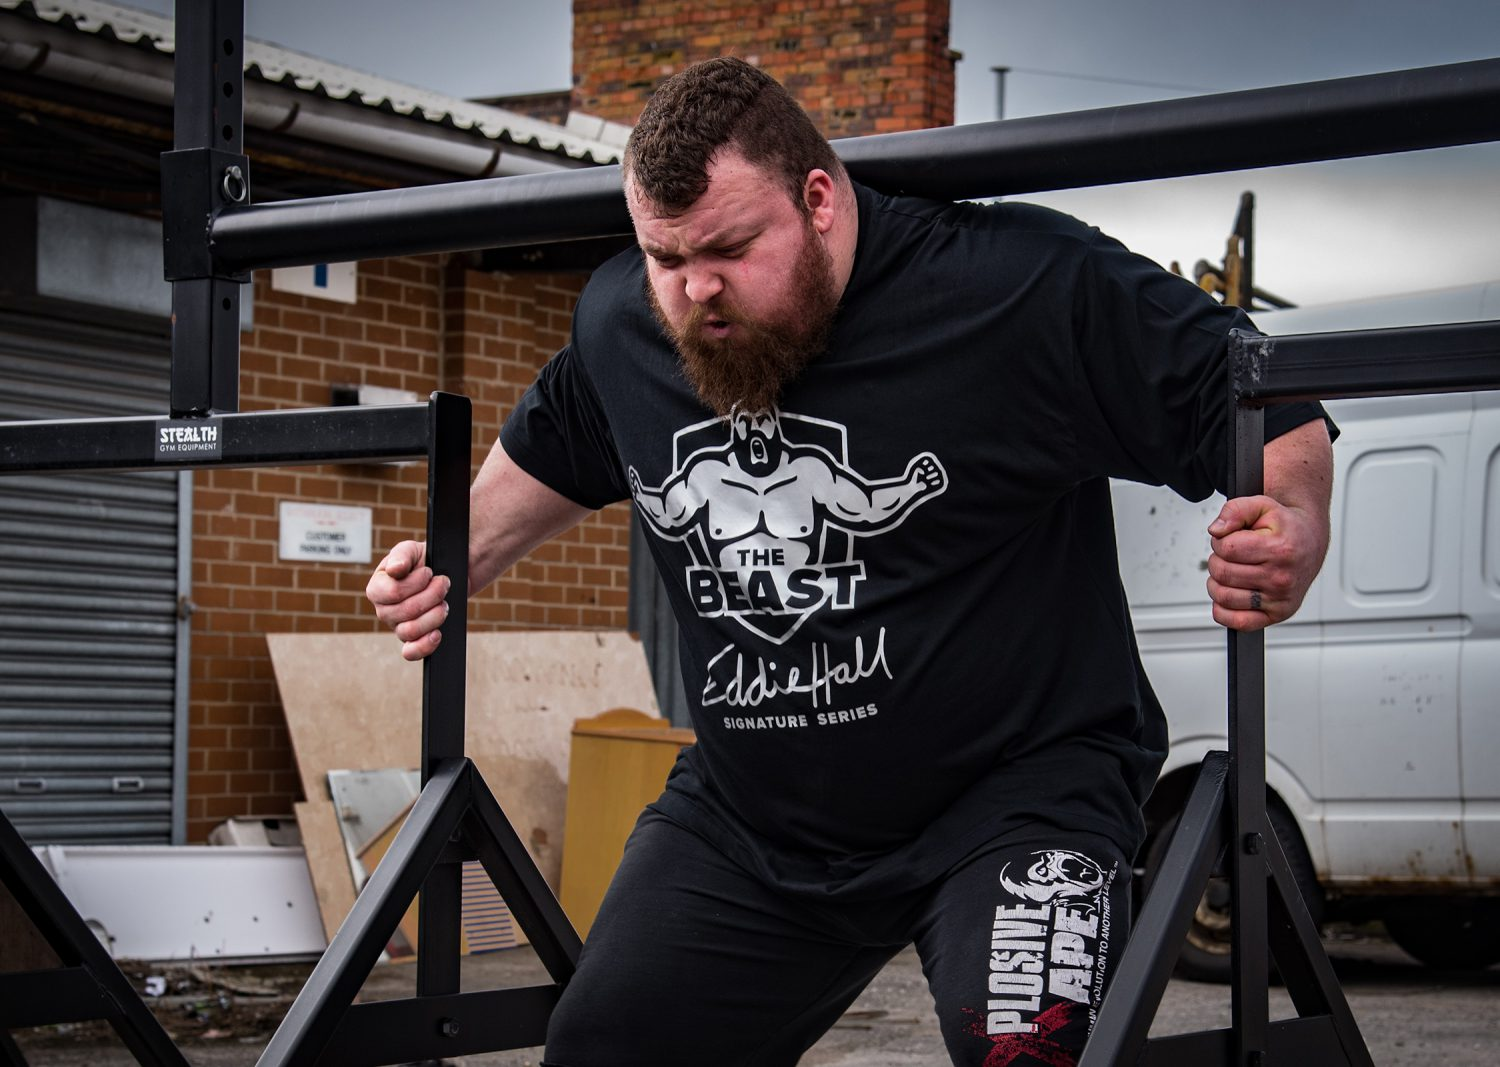 eddie-hall-the-beast-strong-man-lifting